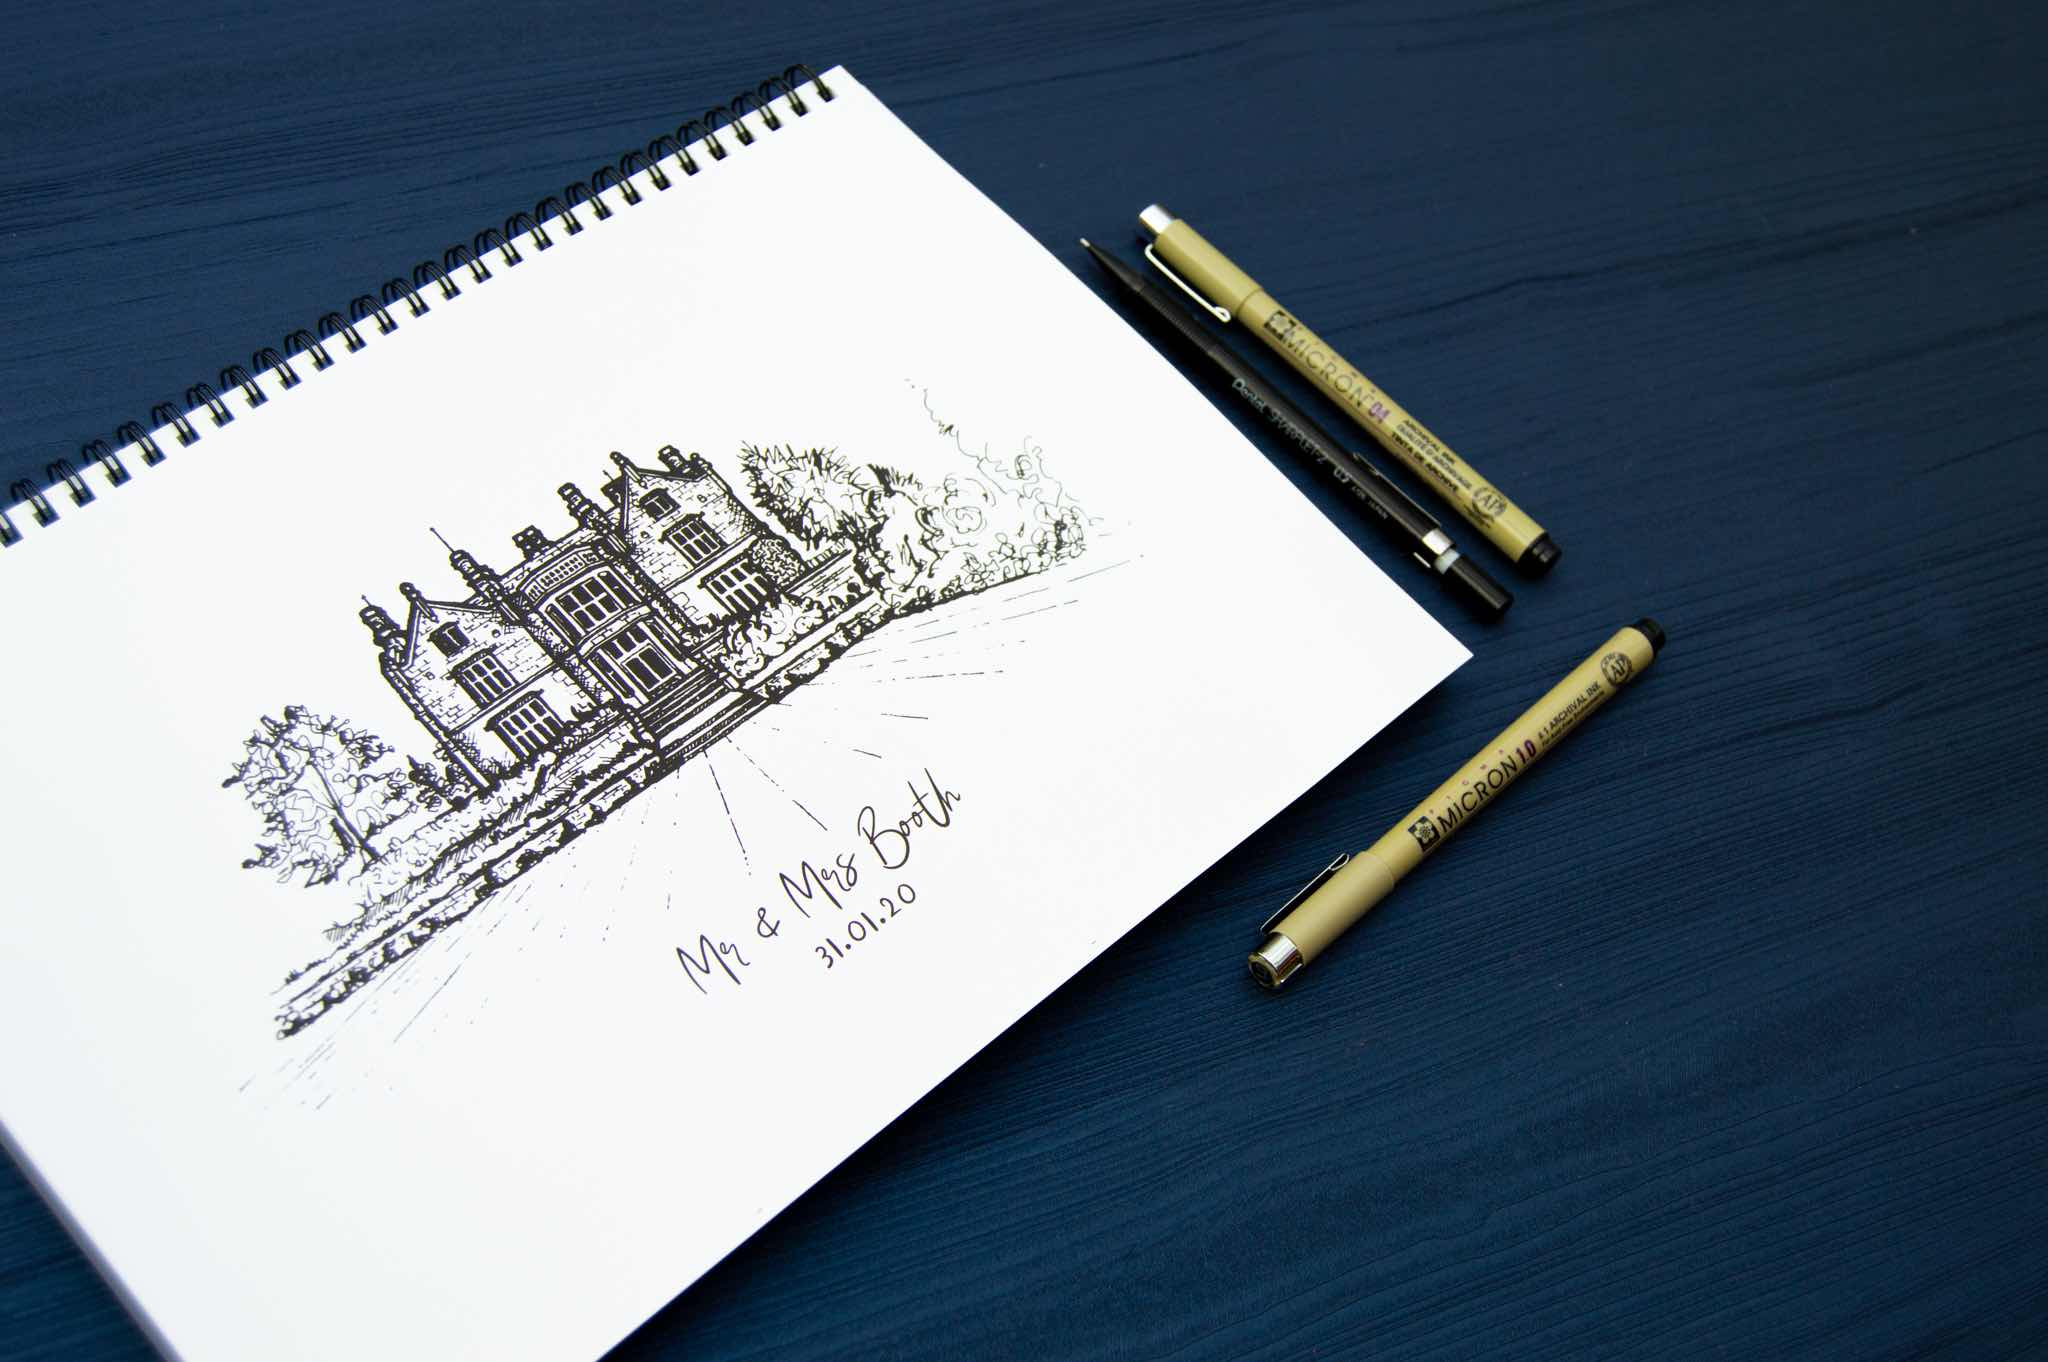 Line drawing of a building on a notepad with pens nearby laid on a dark blue surface.